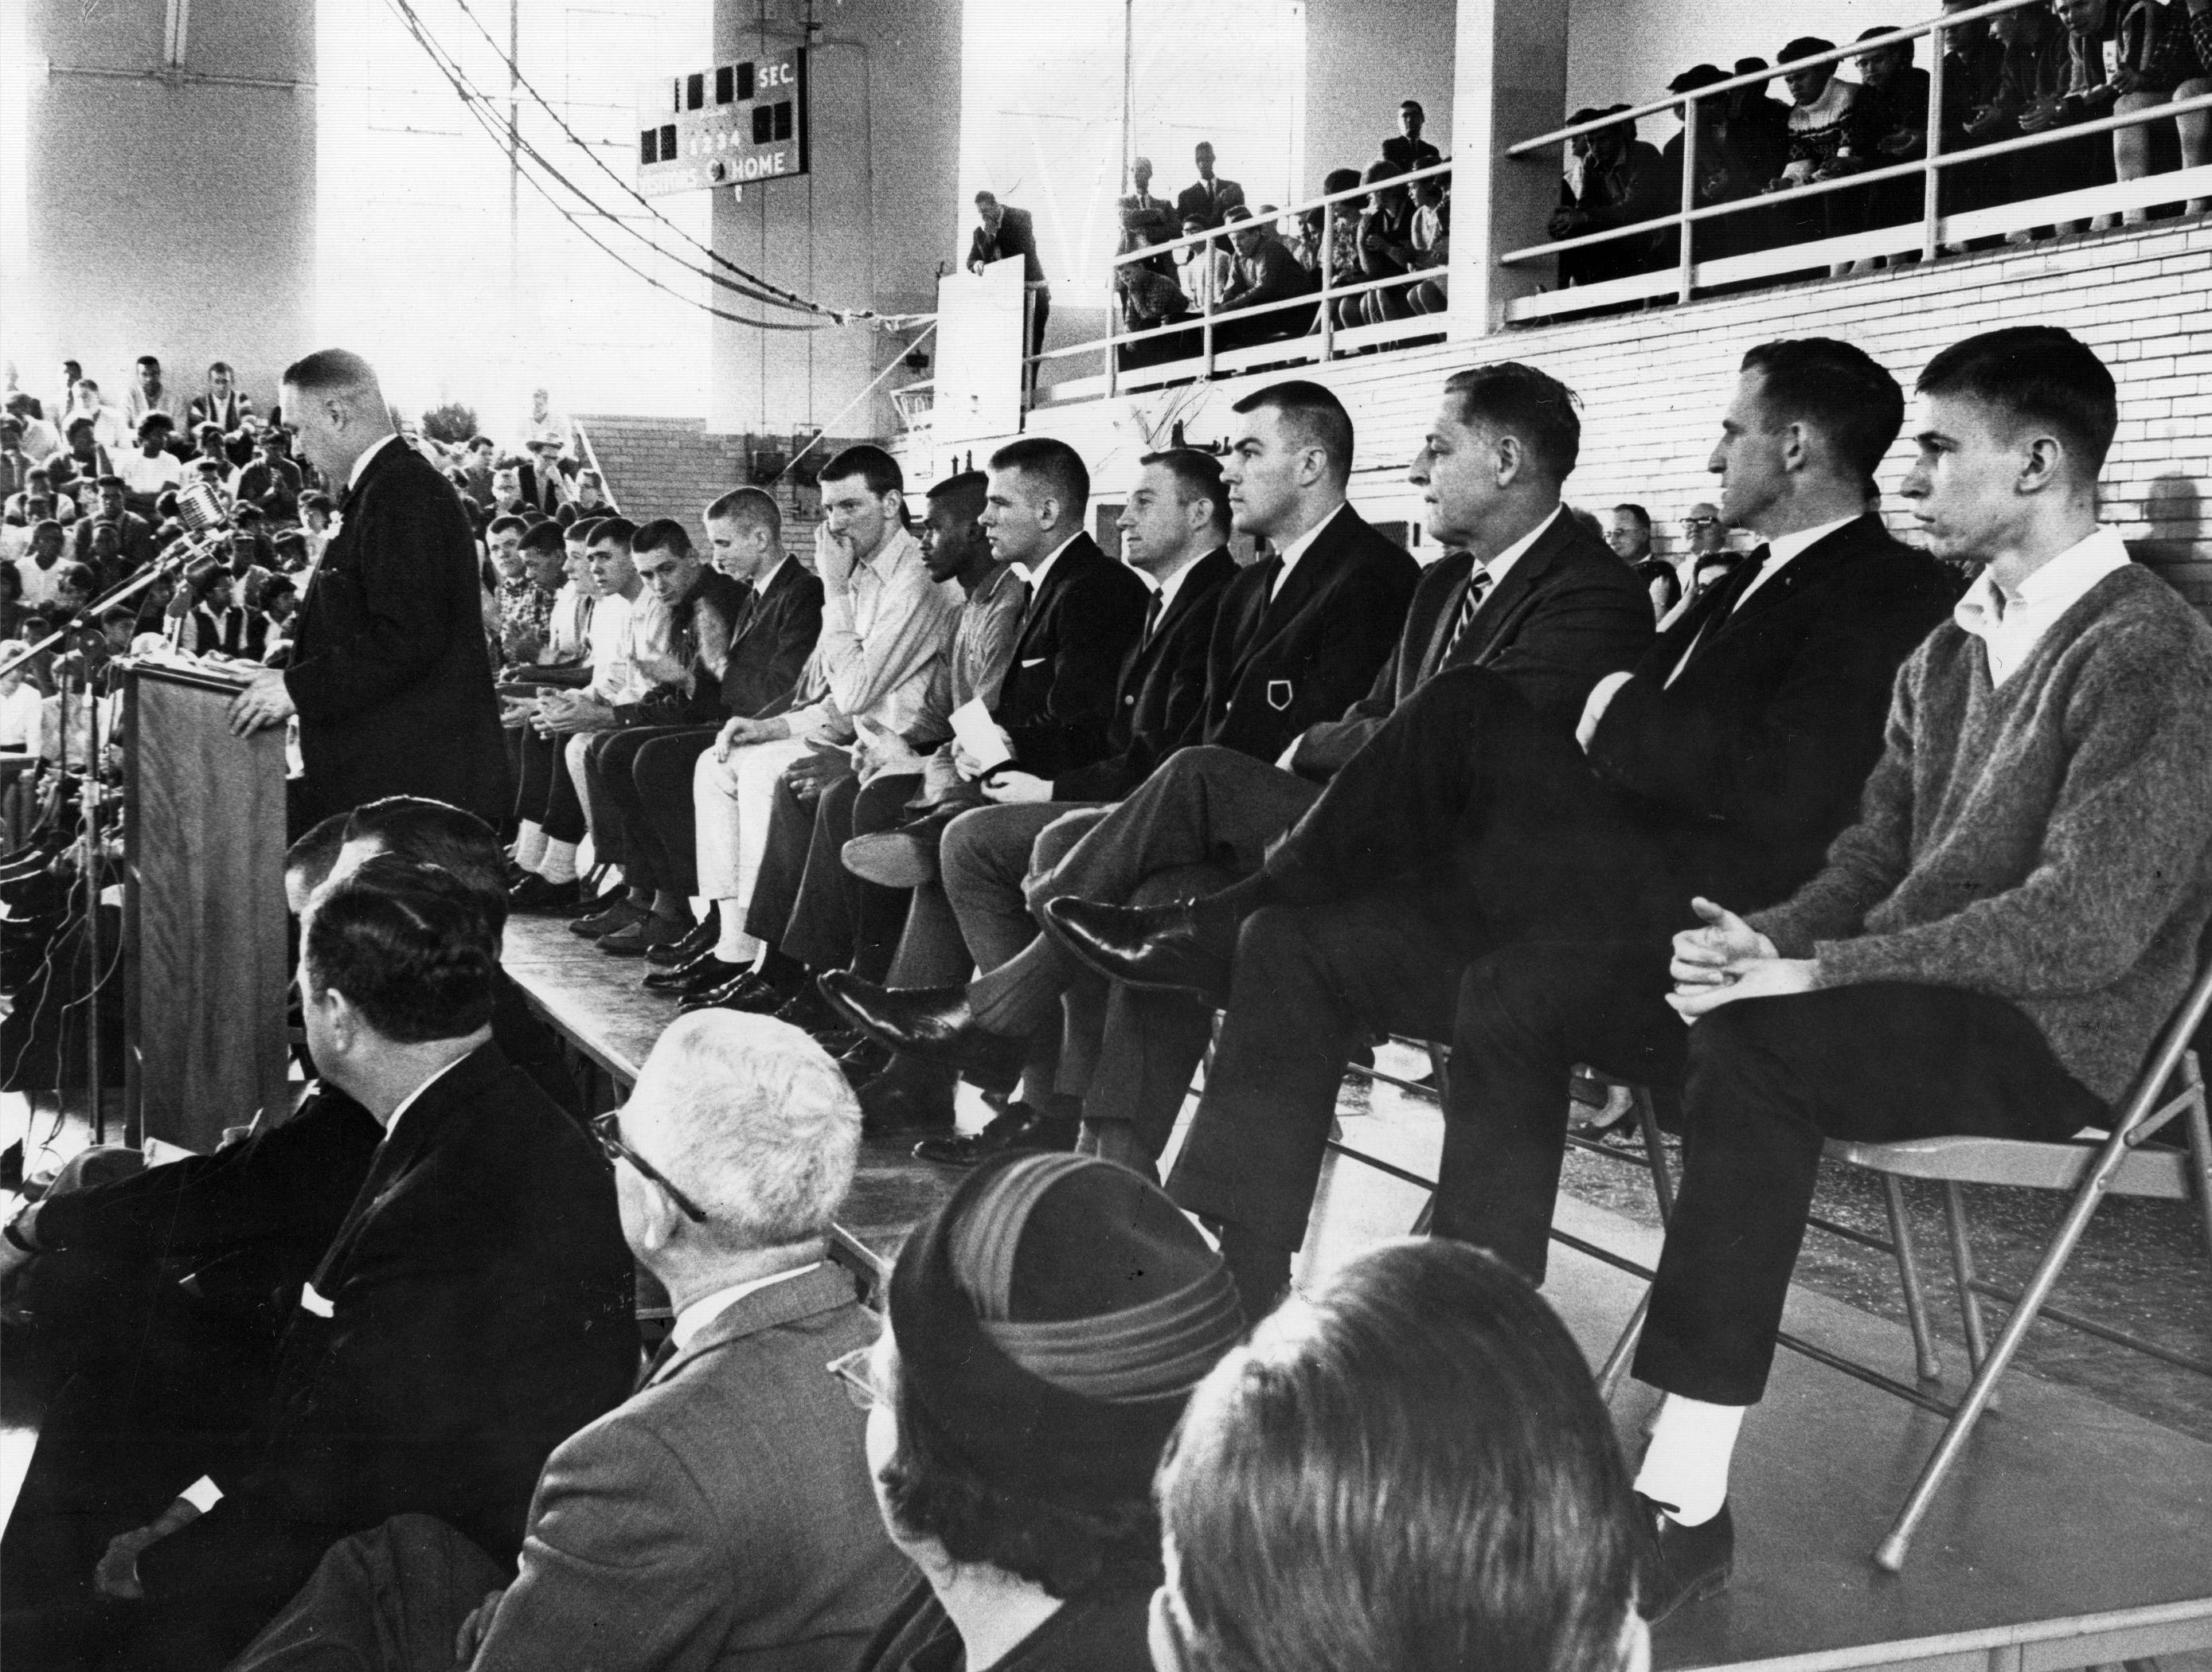 Teacher James Otto addresses the George Washington High School student body as the 1965 Indiana high school basketball state champion Continentals team sits behind him. March 22, 1965.